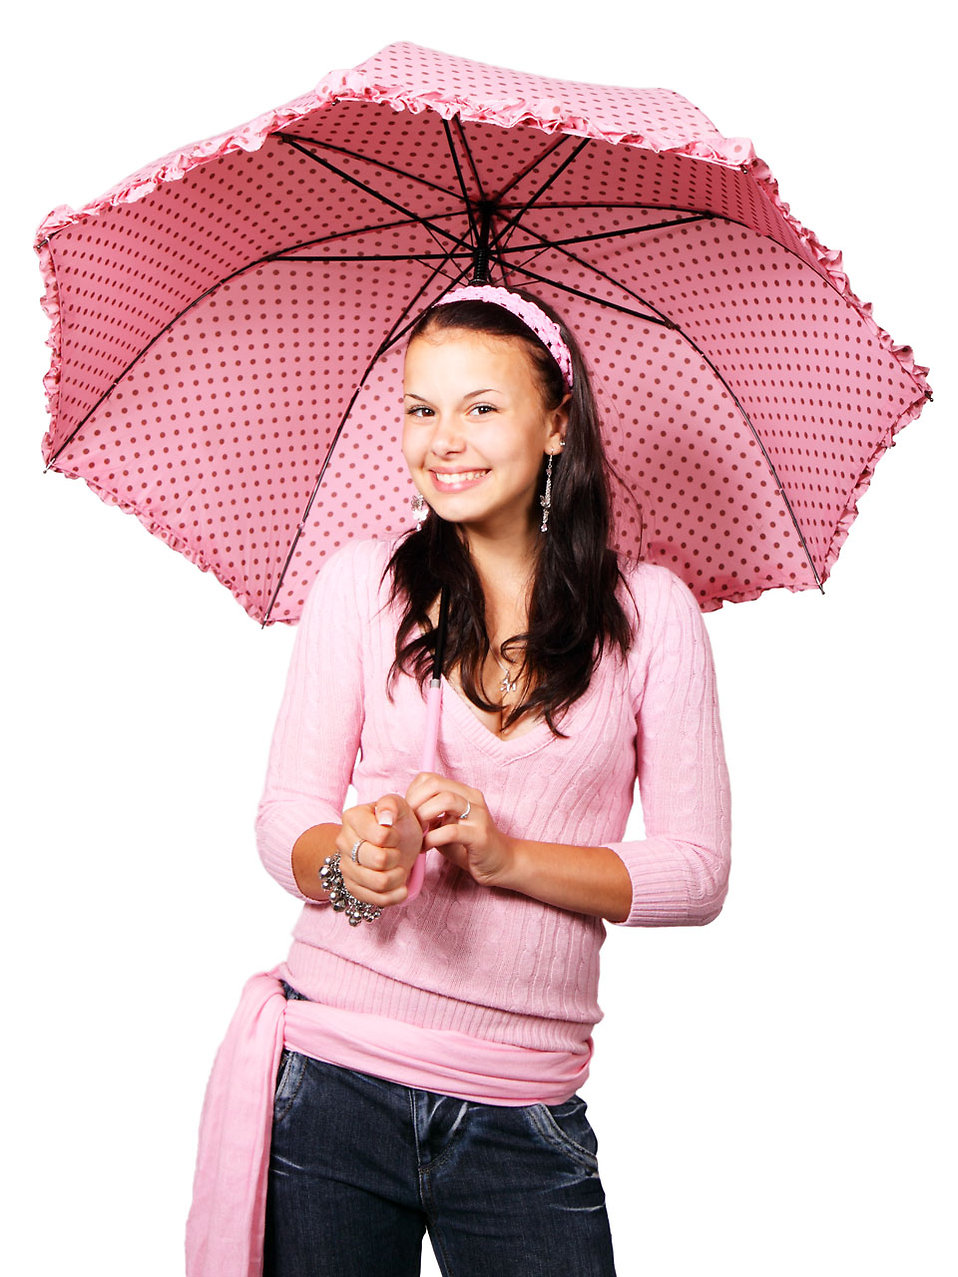 A beautiful girl with a pink umbrella : Free Stock Photo